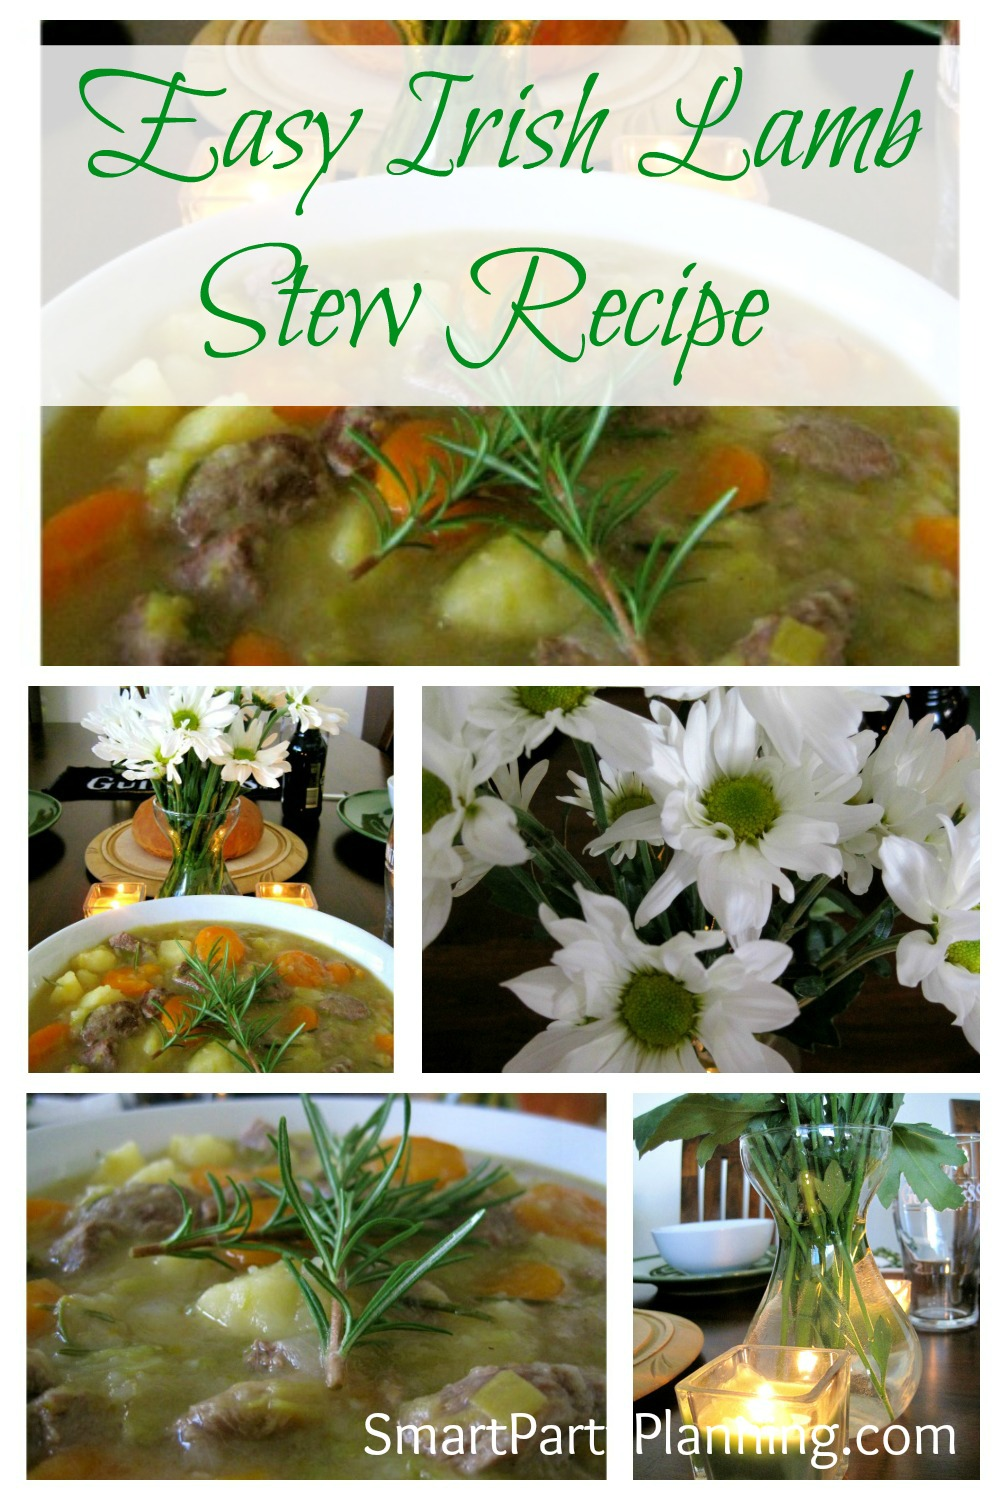 A delicious Irish Lamb stew recipe which is the perfect meal to serve on St Patrick's day. An easy, delicious and budget friendly meal.